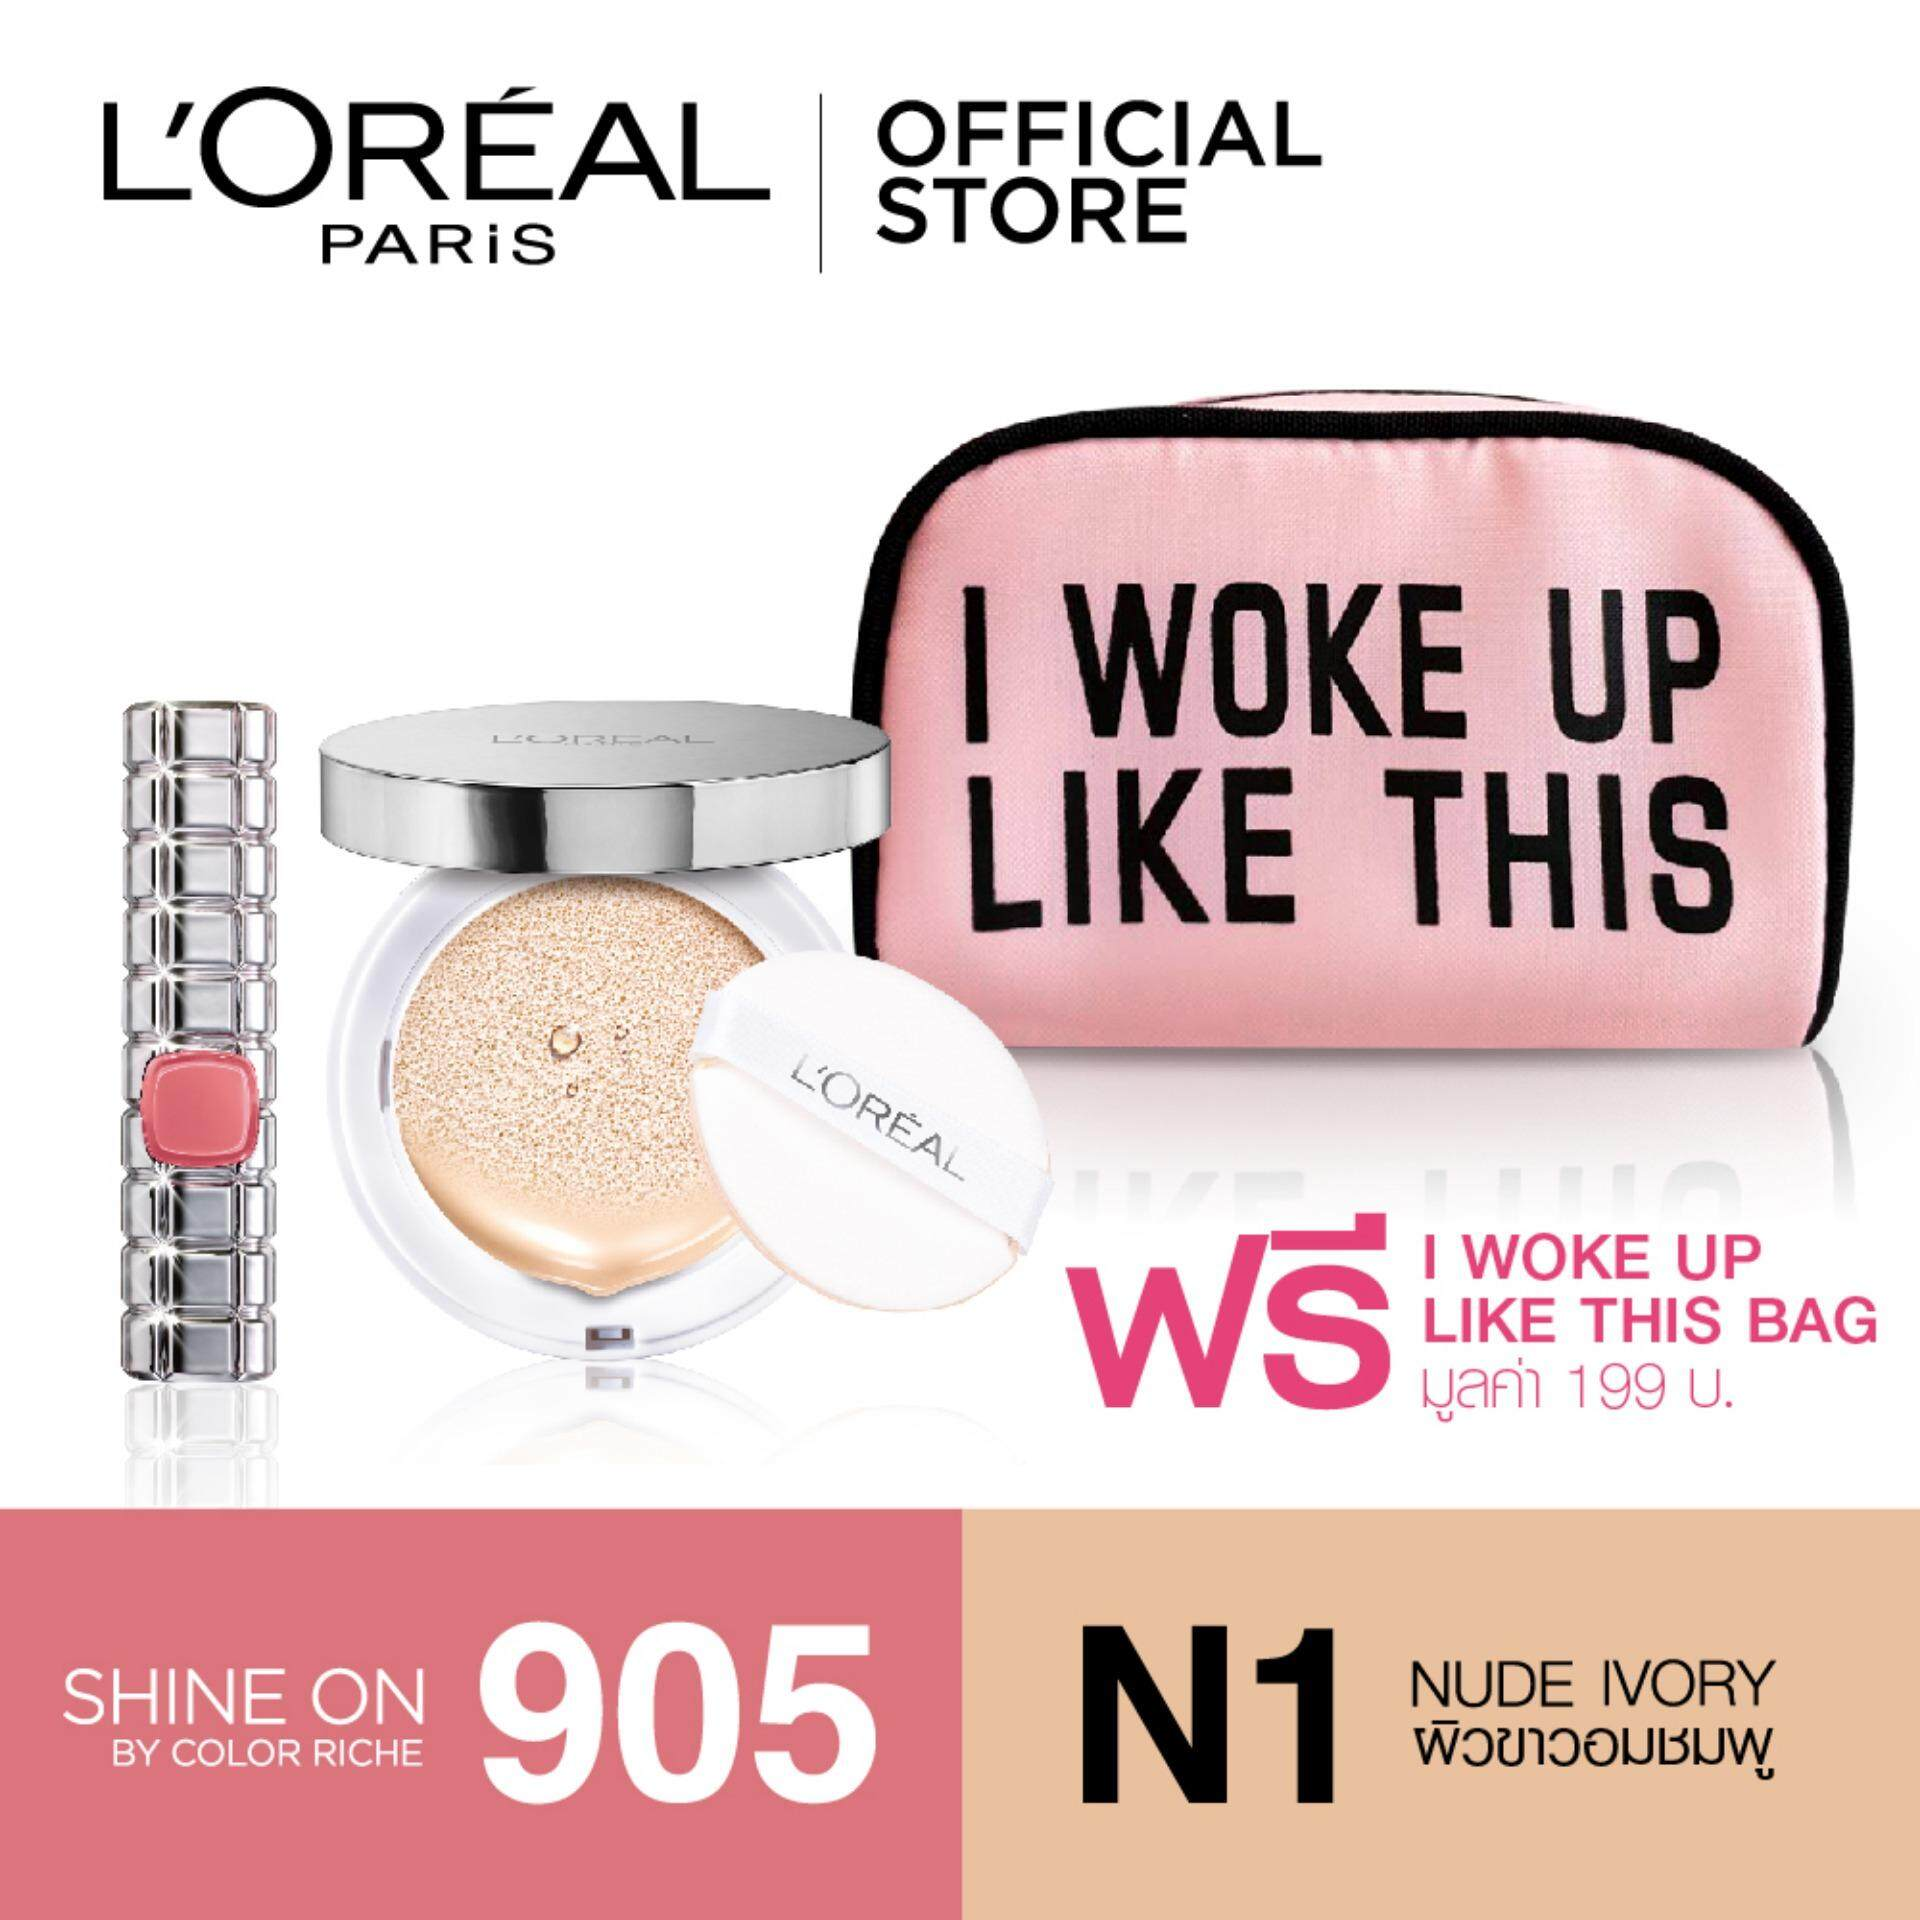 (ฟรี! Woke Up Like This Bag มูลค่า 199 บาท)เมื่อซื้อ True Match Cushion N1 Nude Ivory + COL RICHE SHINE STICK 905